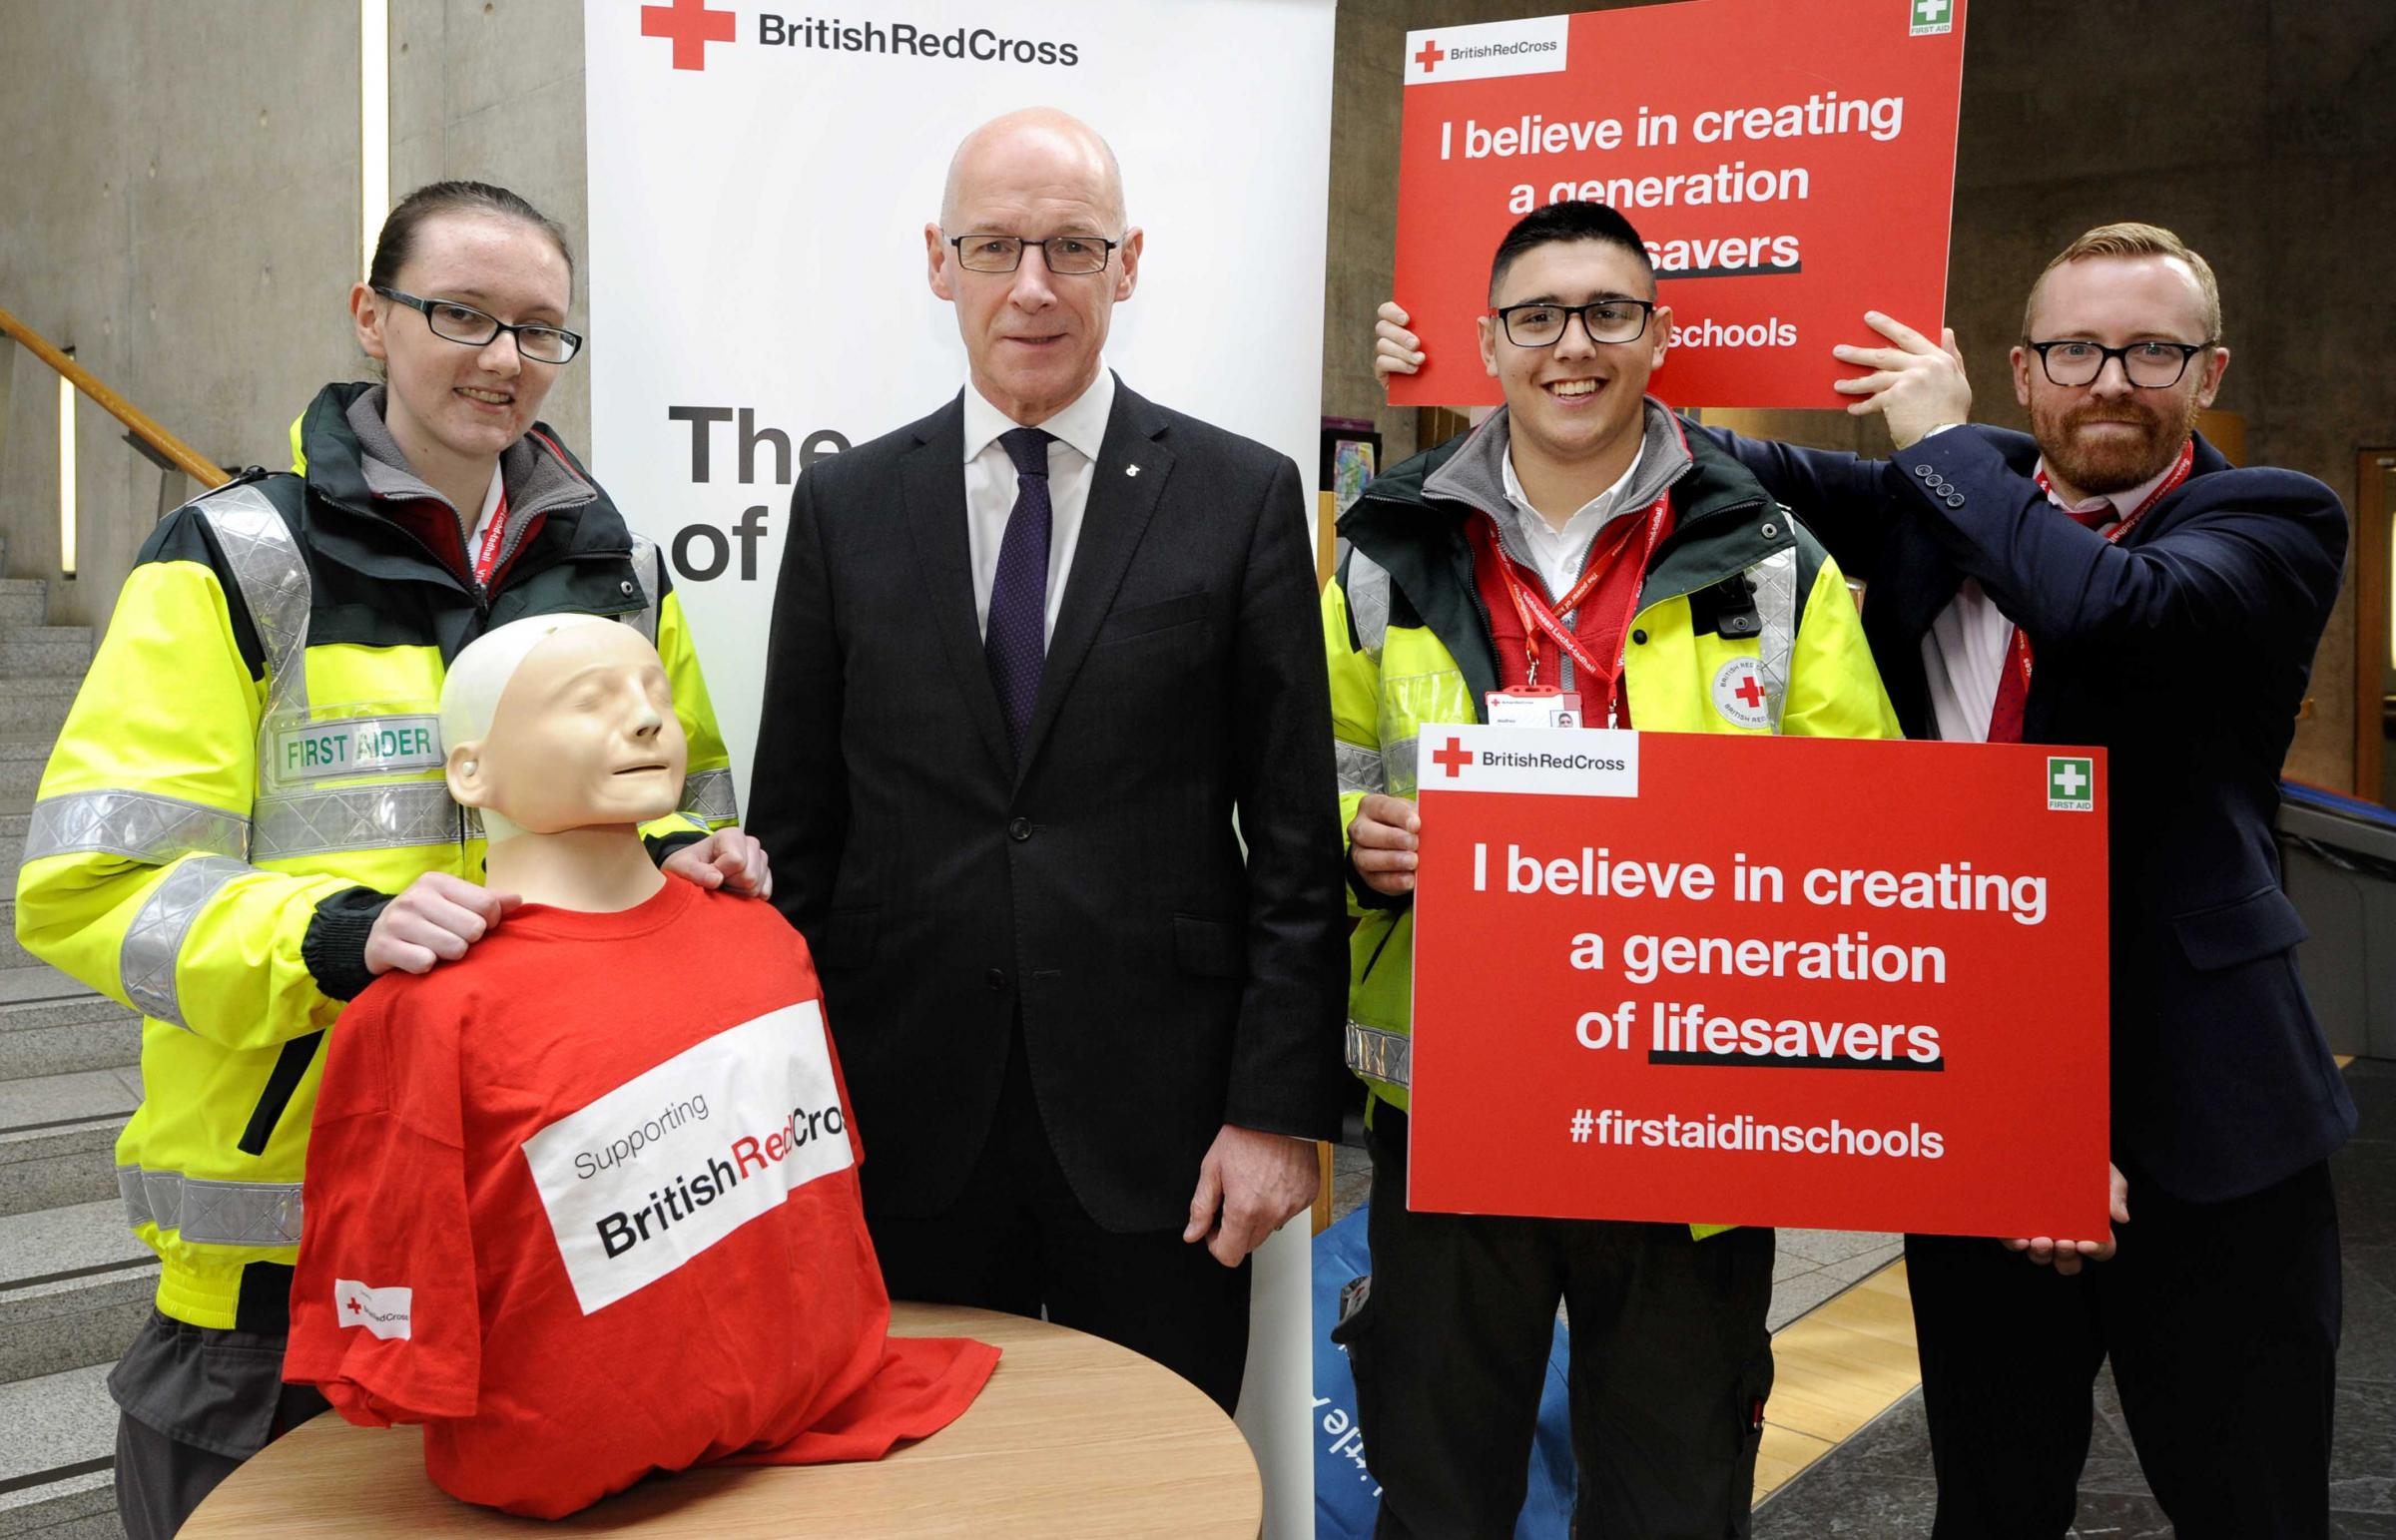 John Swinney launches Scottish schools first aid programme